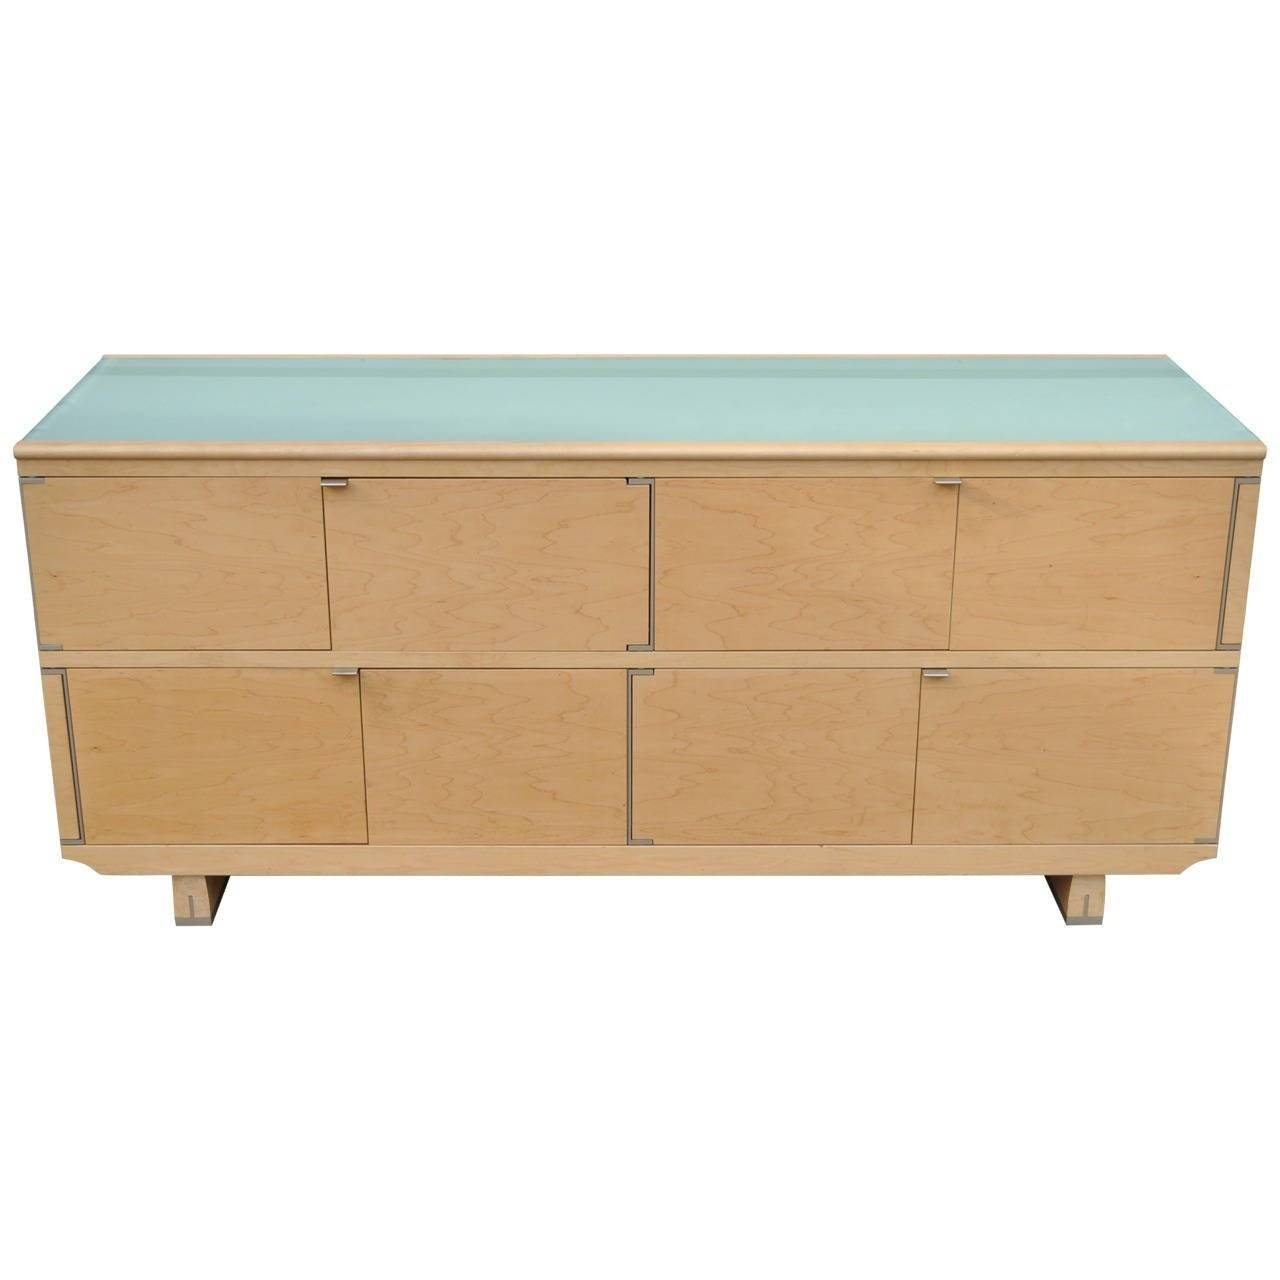 Live Edge Ambrosia Maple Sideboard, Daniel Oates, Usa At 1stdibs Regarding Most Popular Maple Sideboards (View 8 of 15)